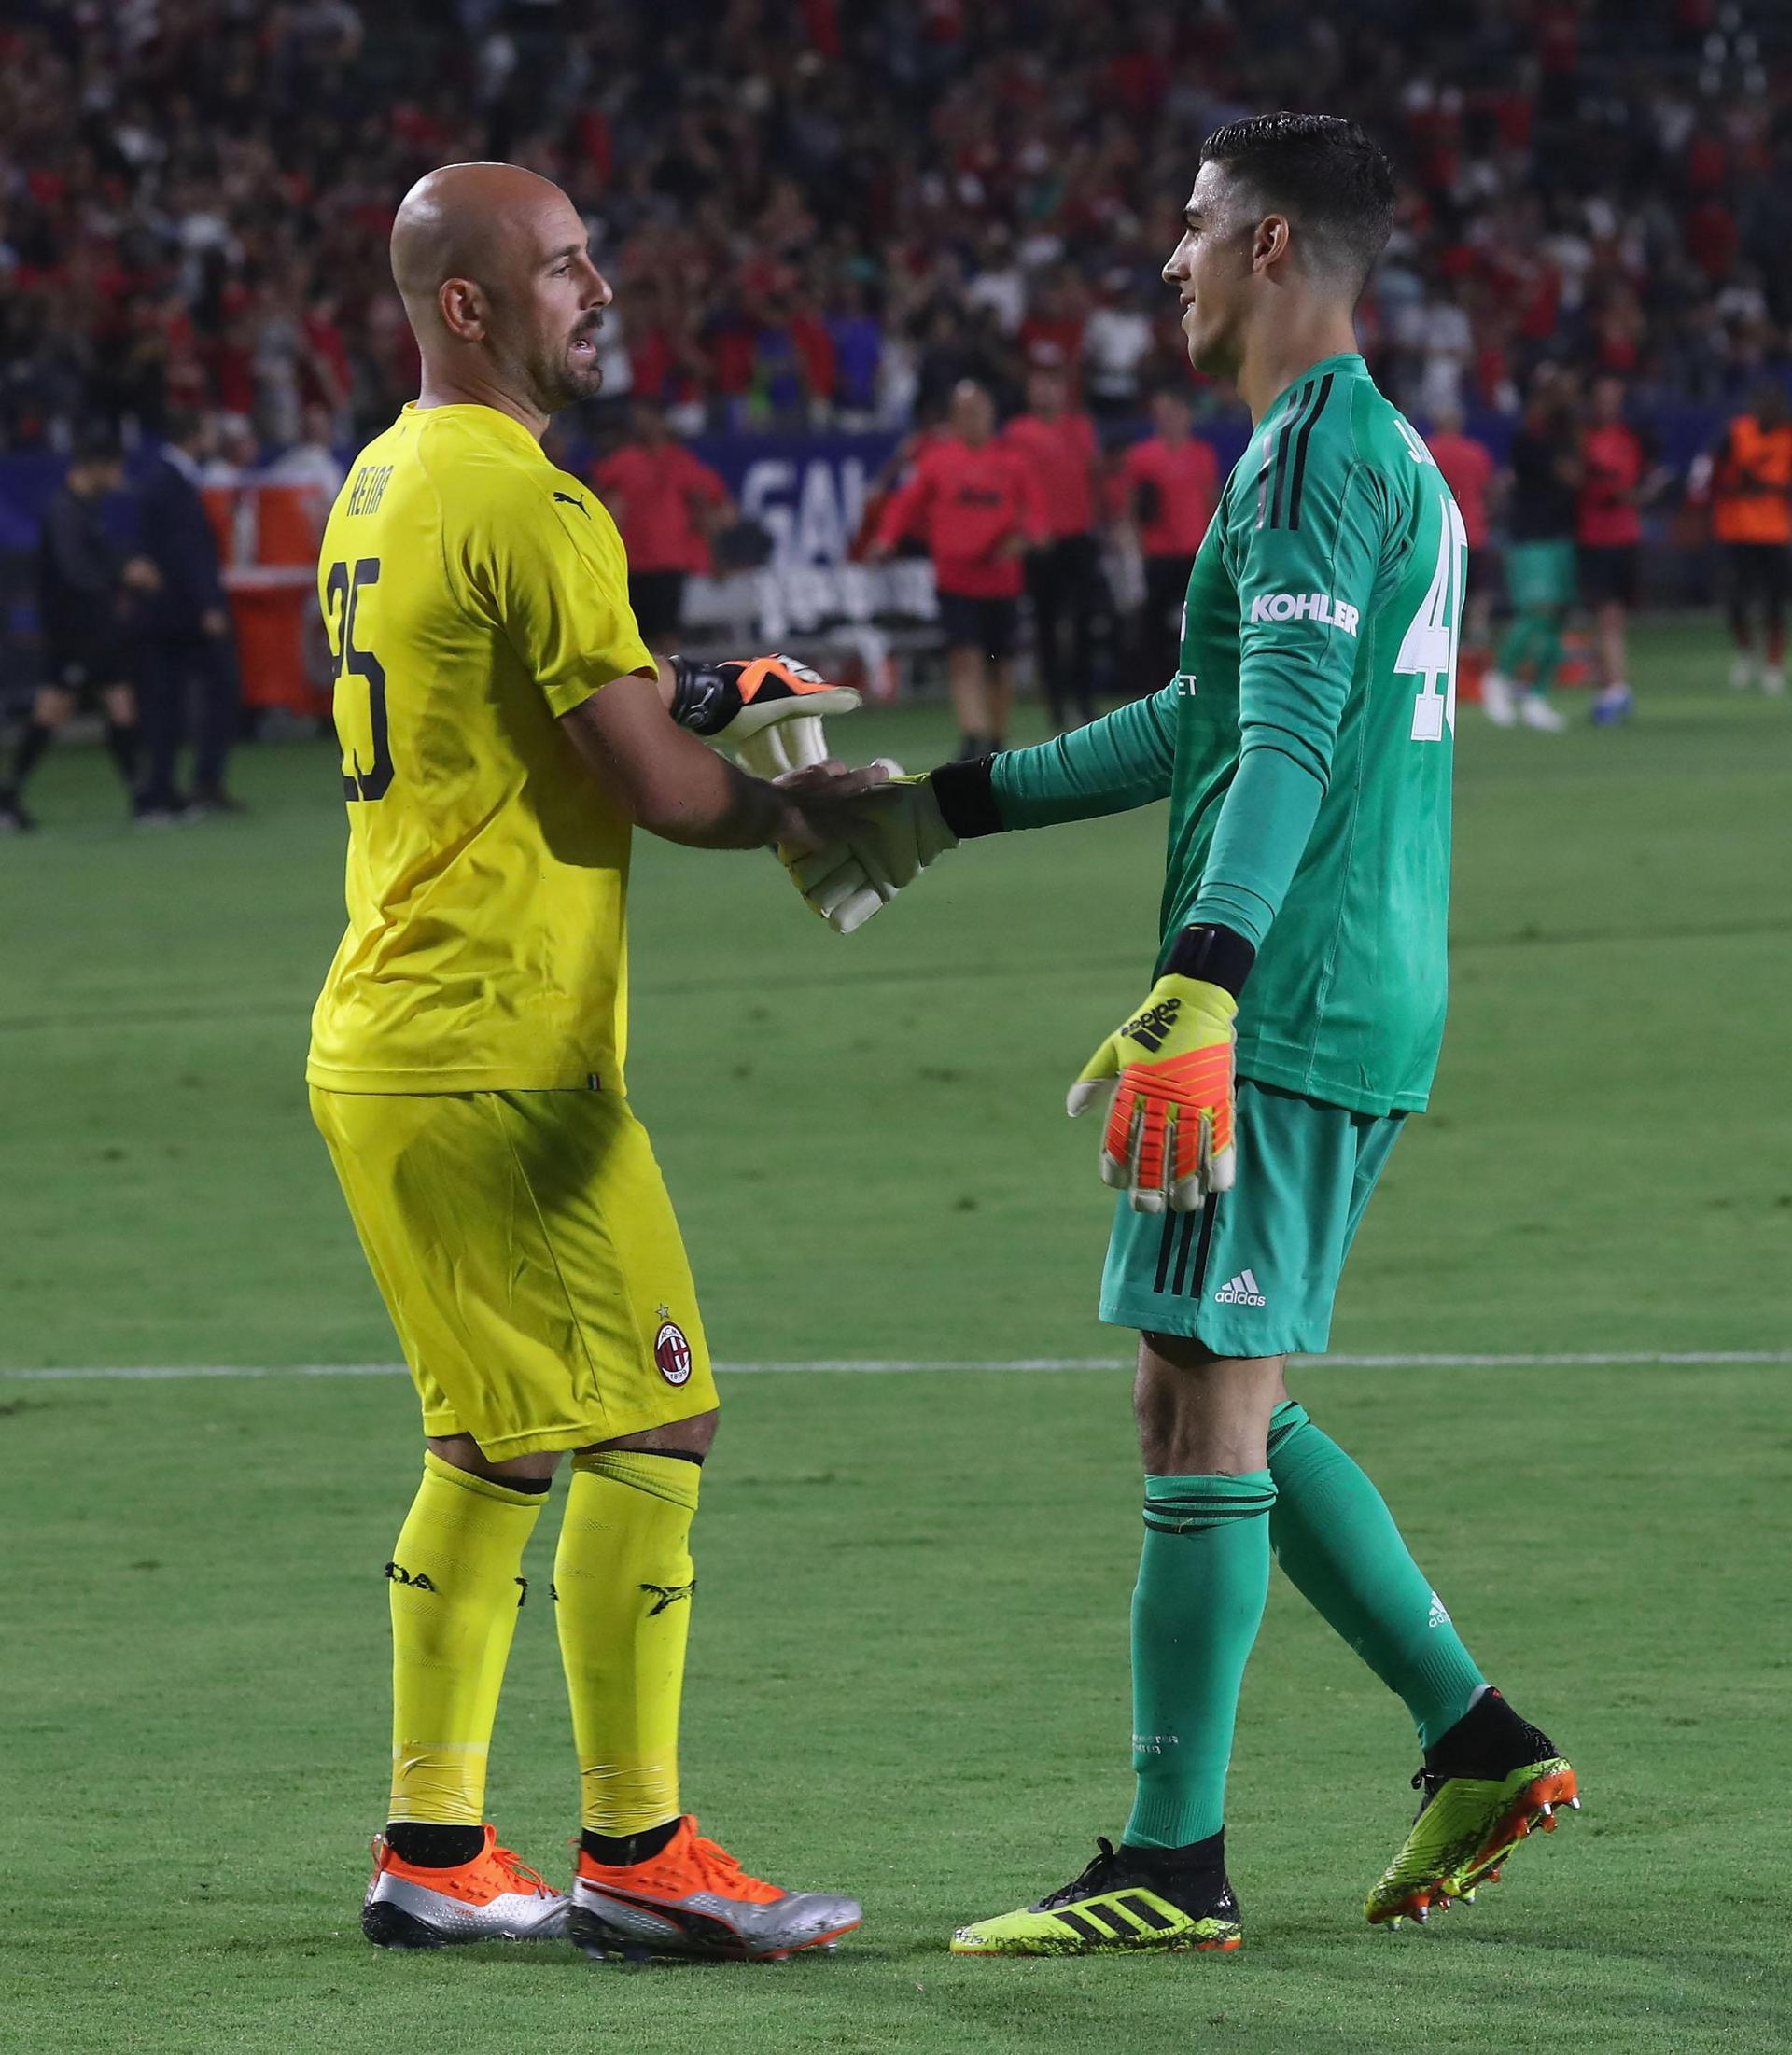 Joel Pereira shakes hands with Pepe Reina after United's penalty shootout win over AC Milan